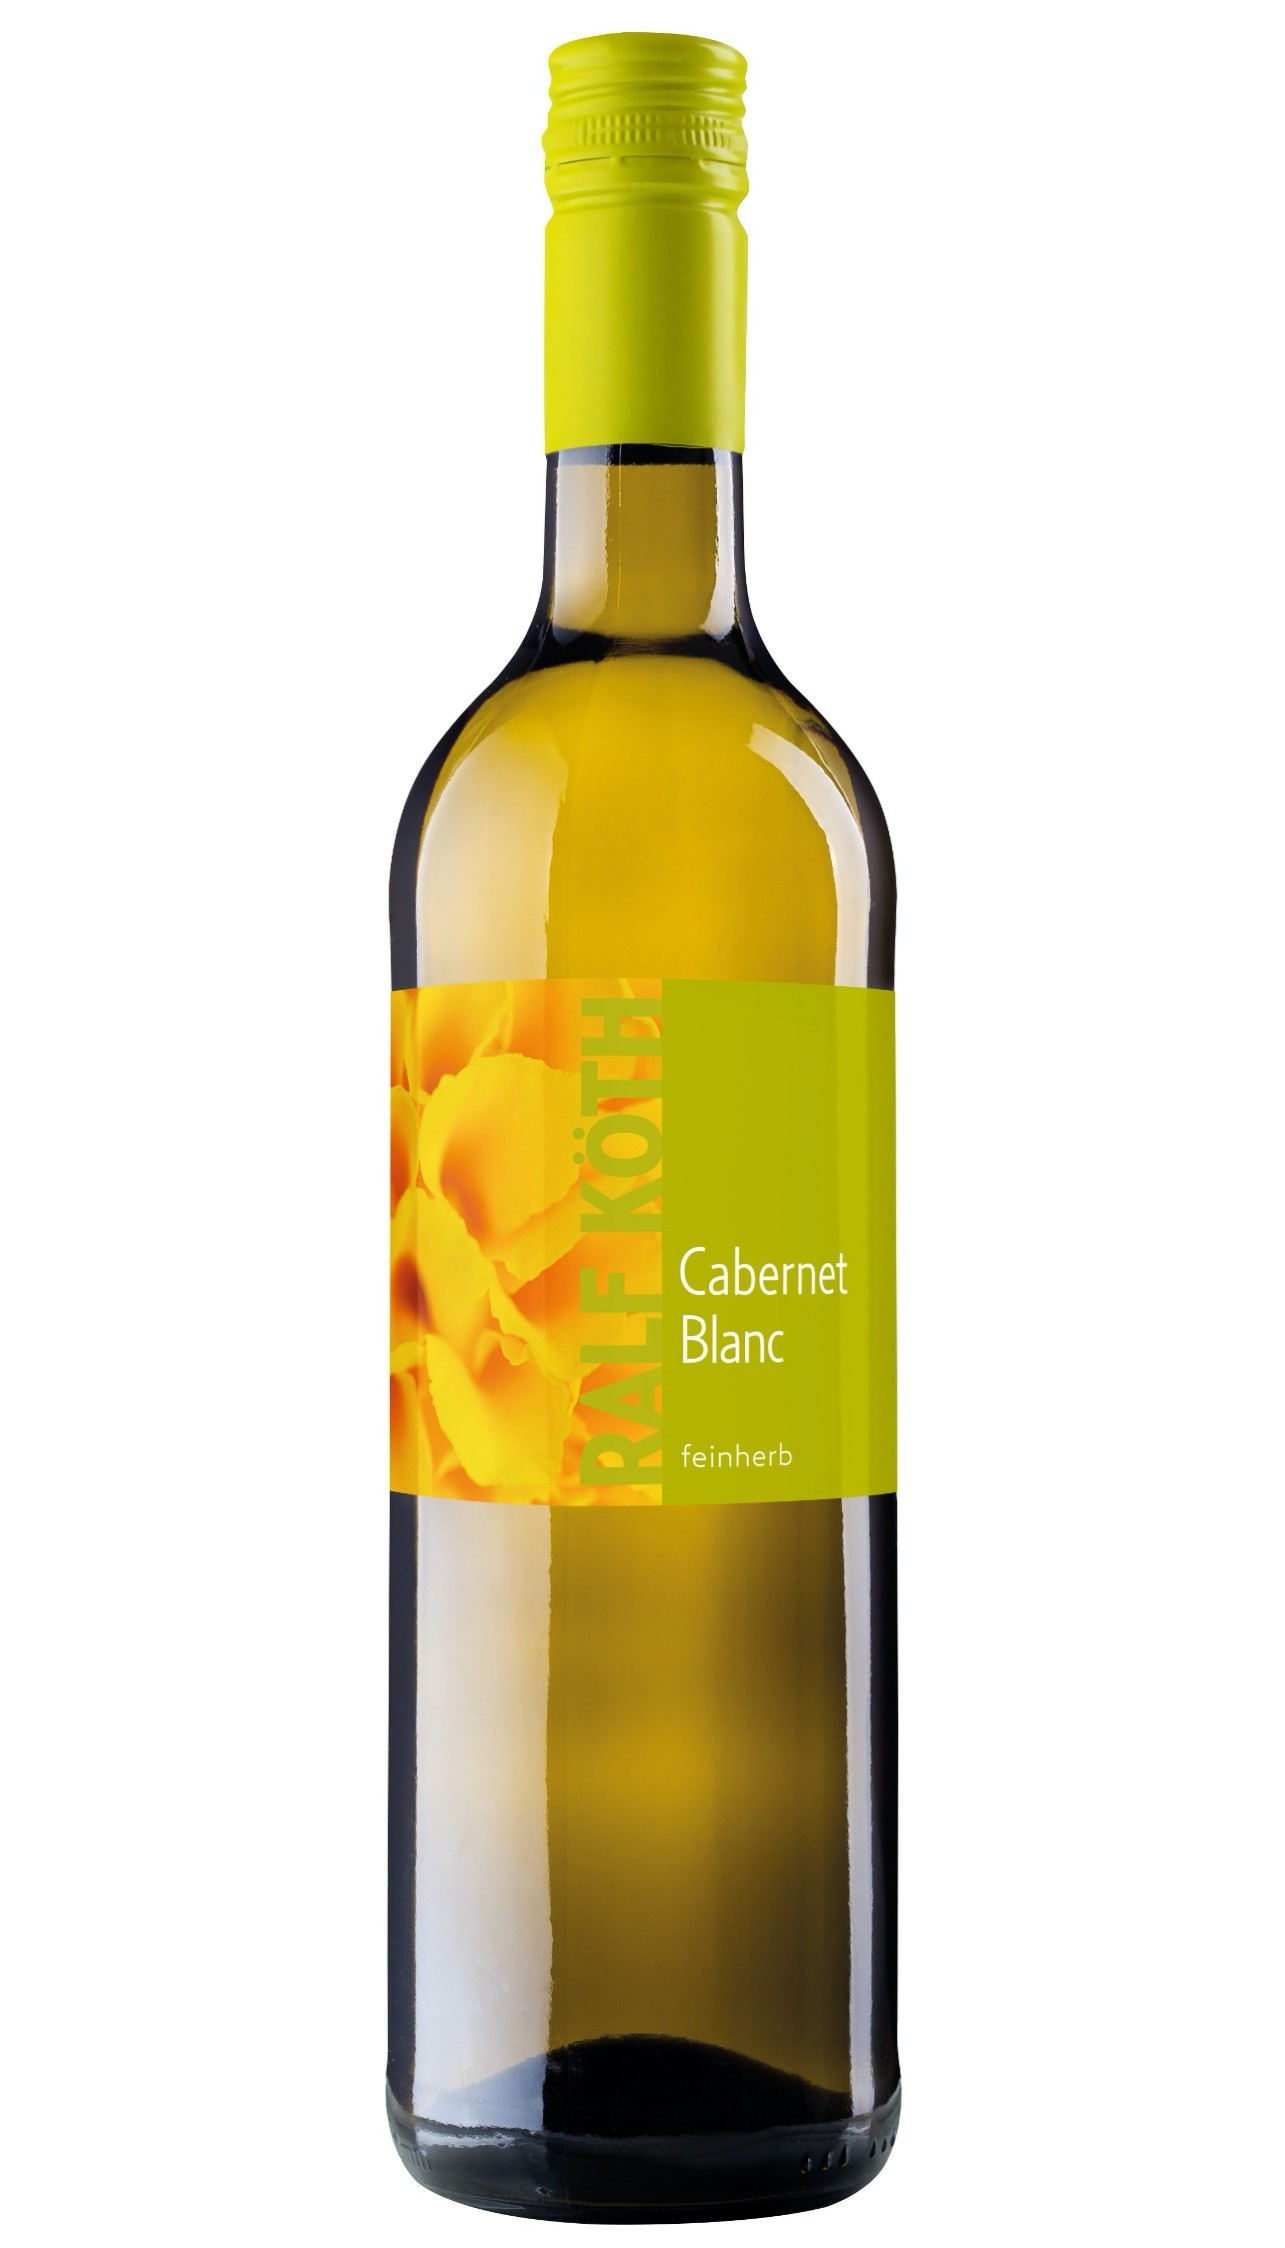 Cabernet Blanc 2018 feinherb 12% vol. 750 ml